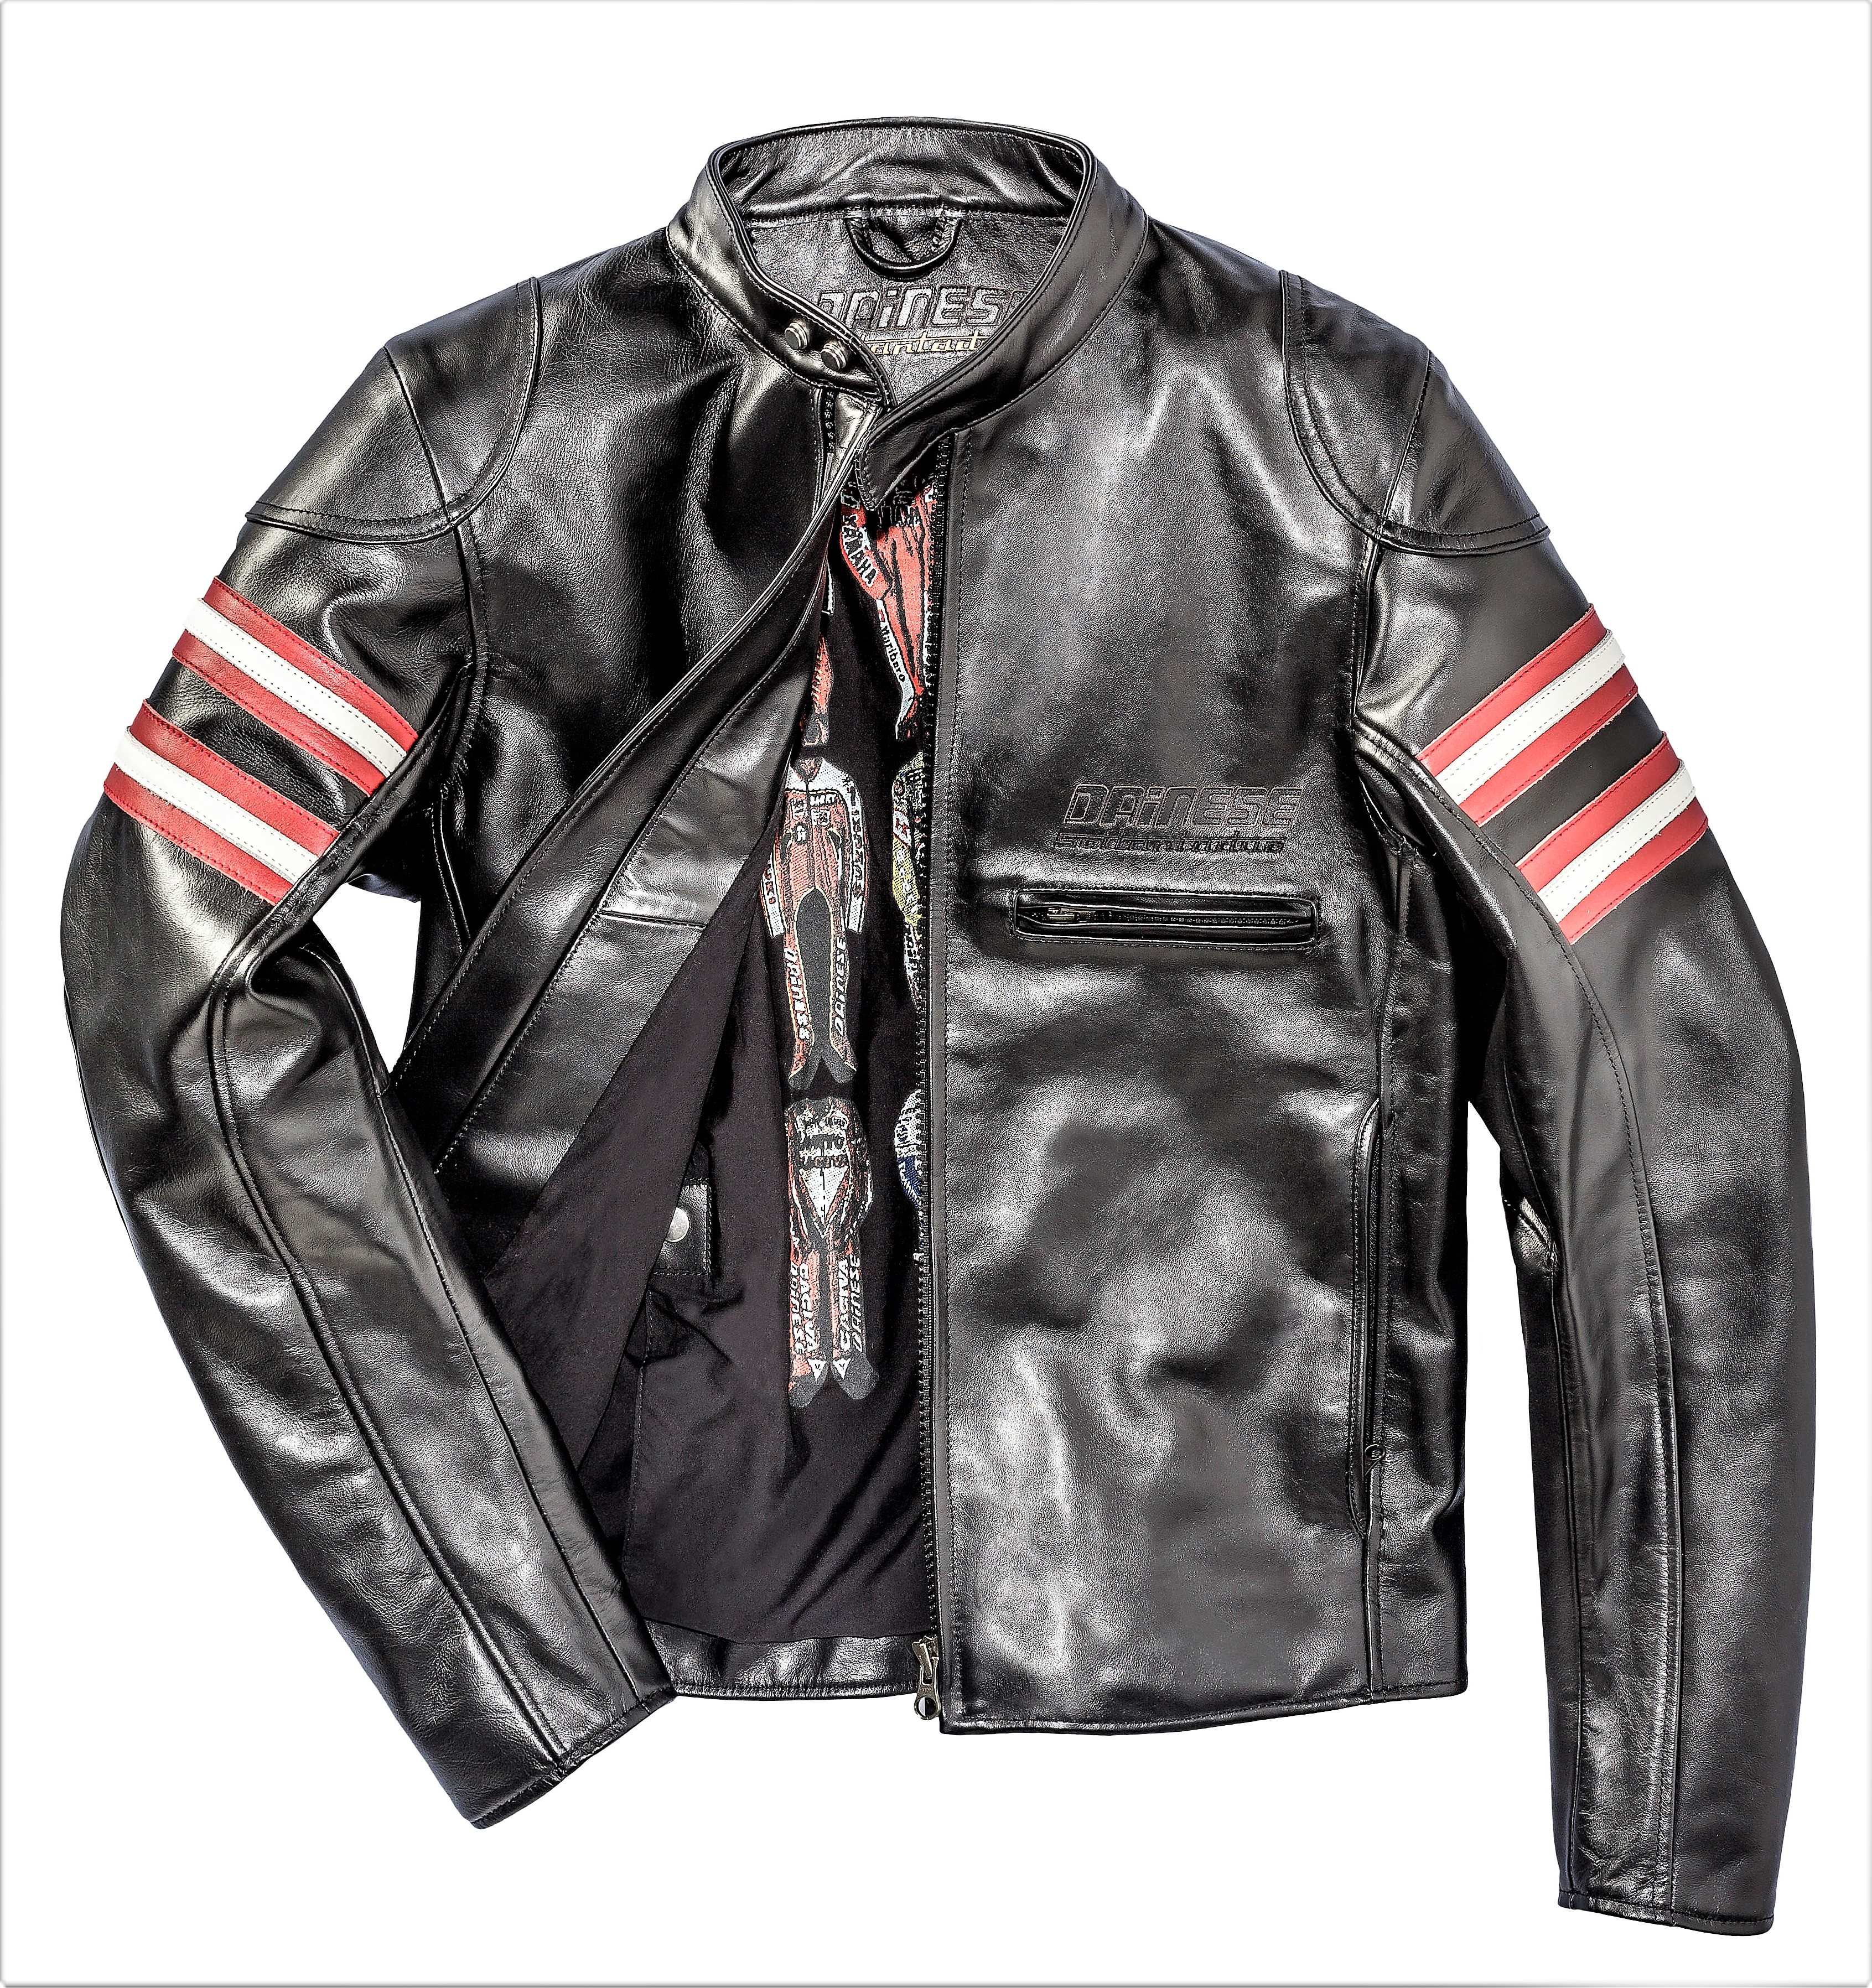 jackets, Italian leather jackets focus on motorcycle racing heritage, ClassicCars.com Journal